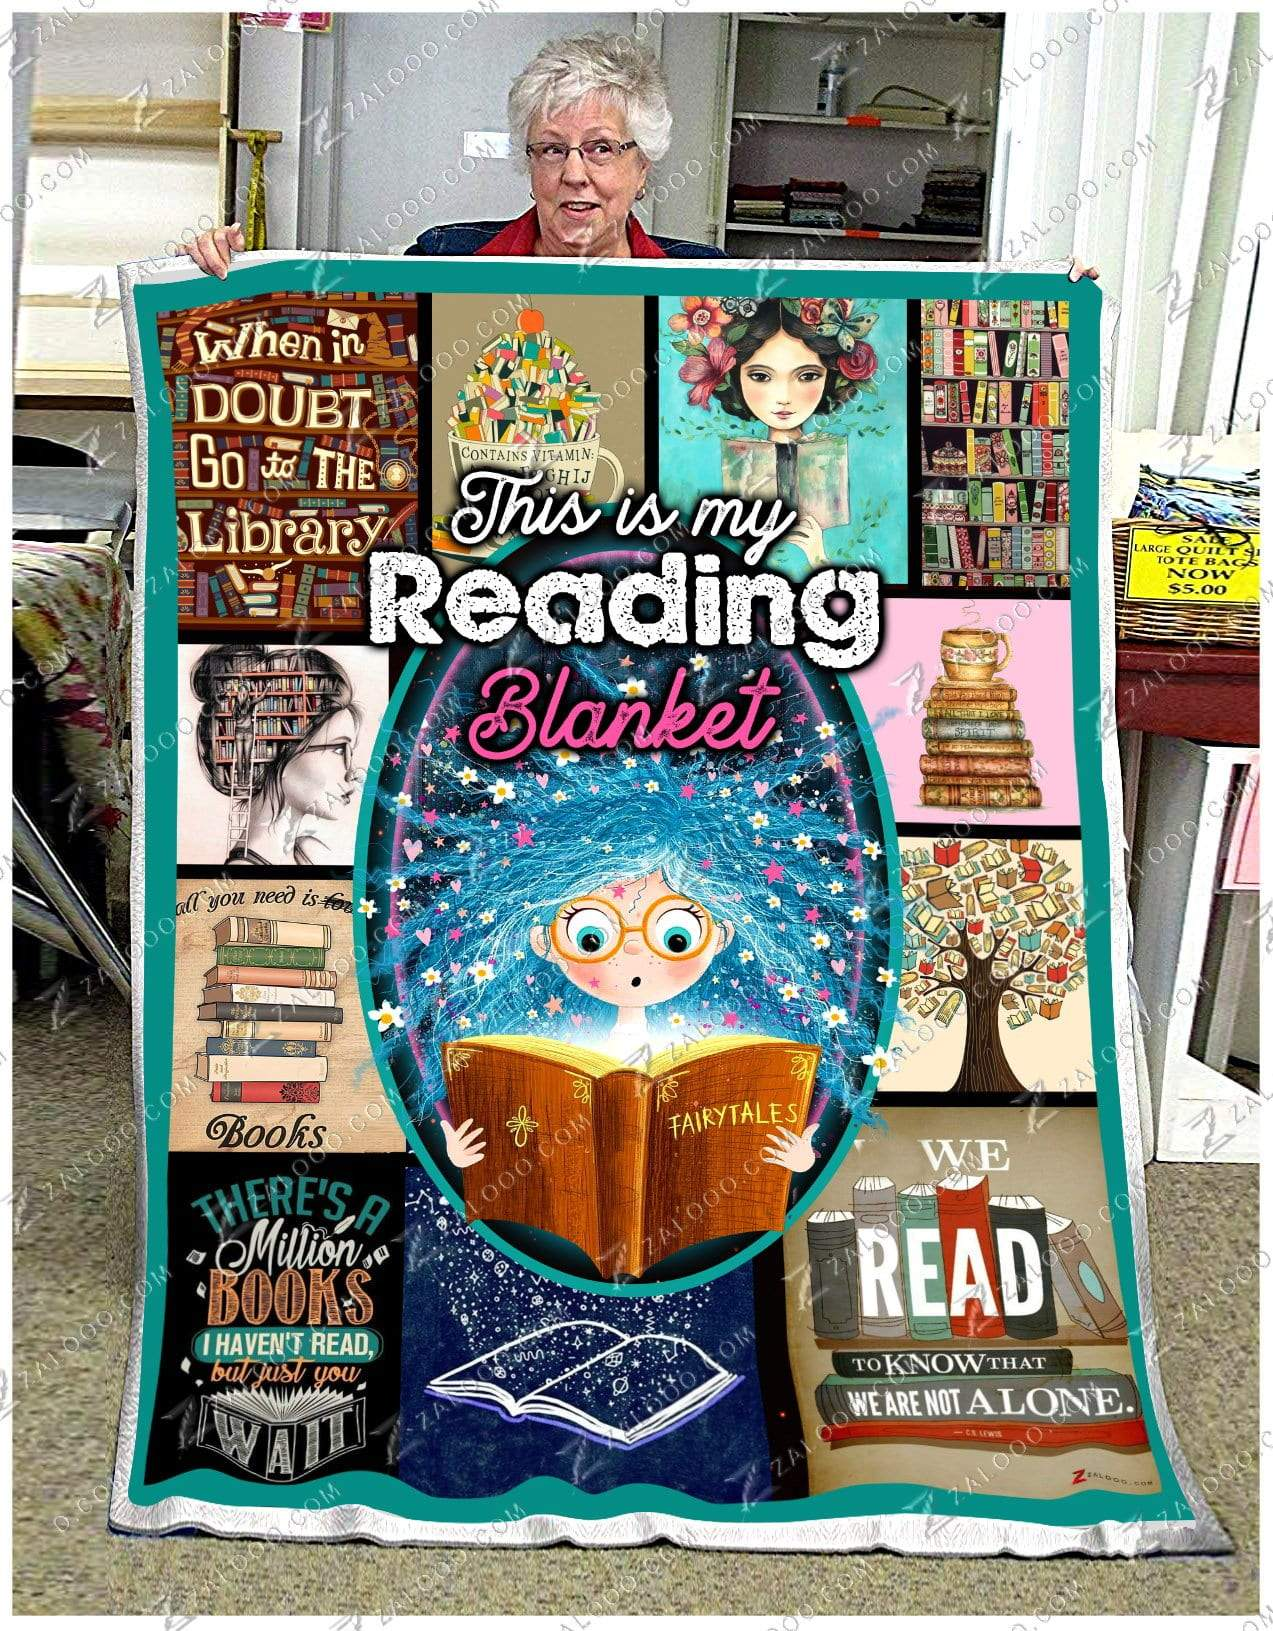 READ - This is my Reading Quilt Blanket EP2138